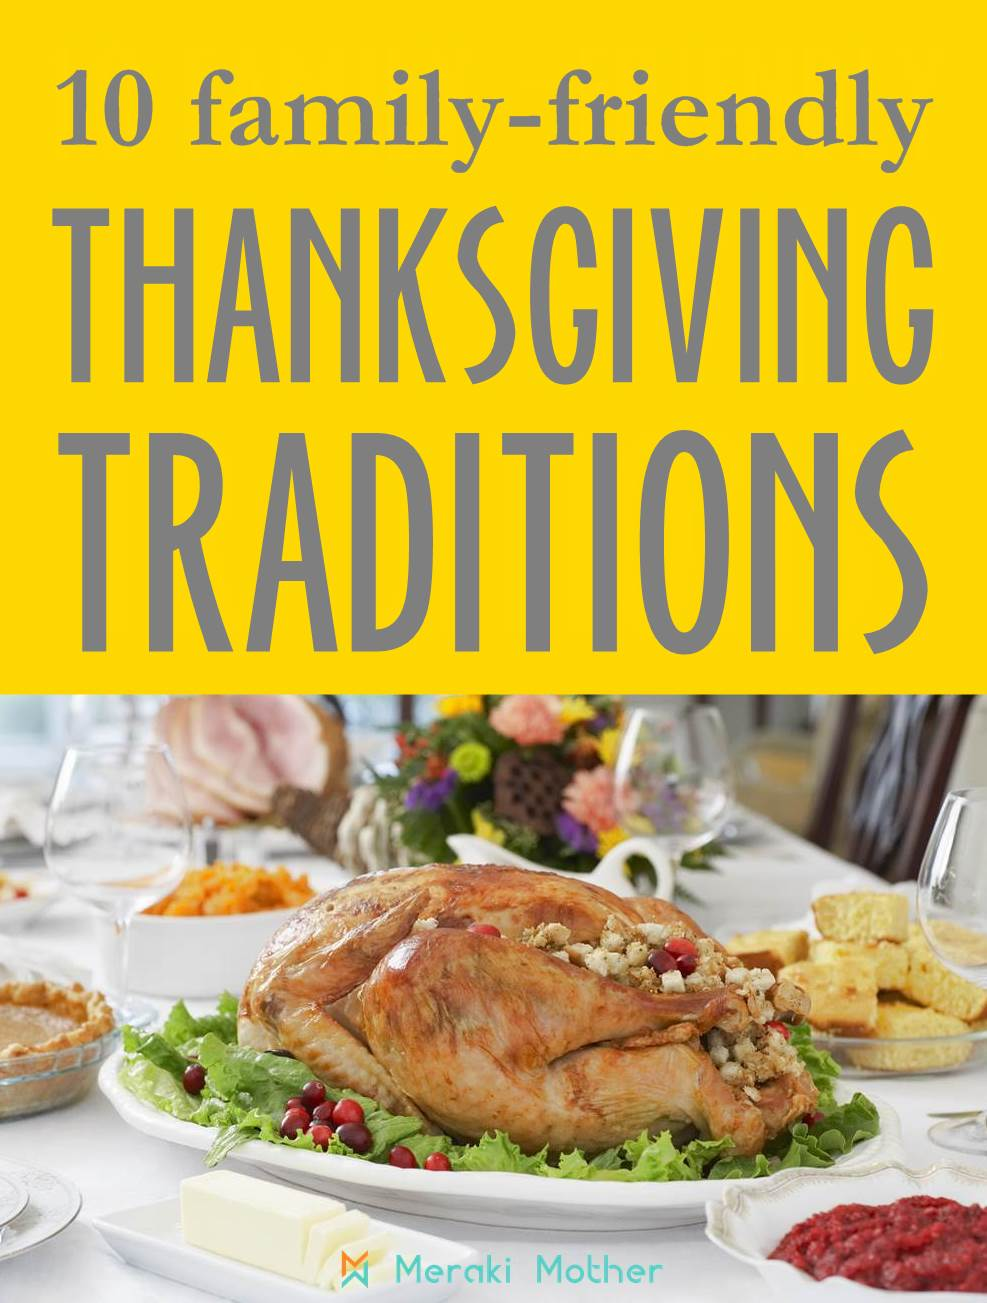 10 family-friendly Thanksgiving traditions